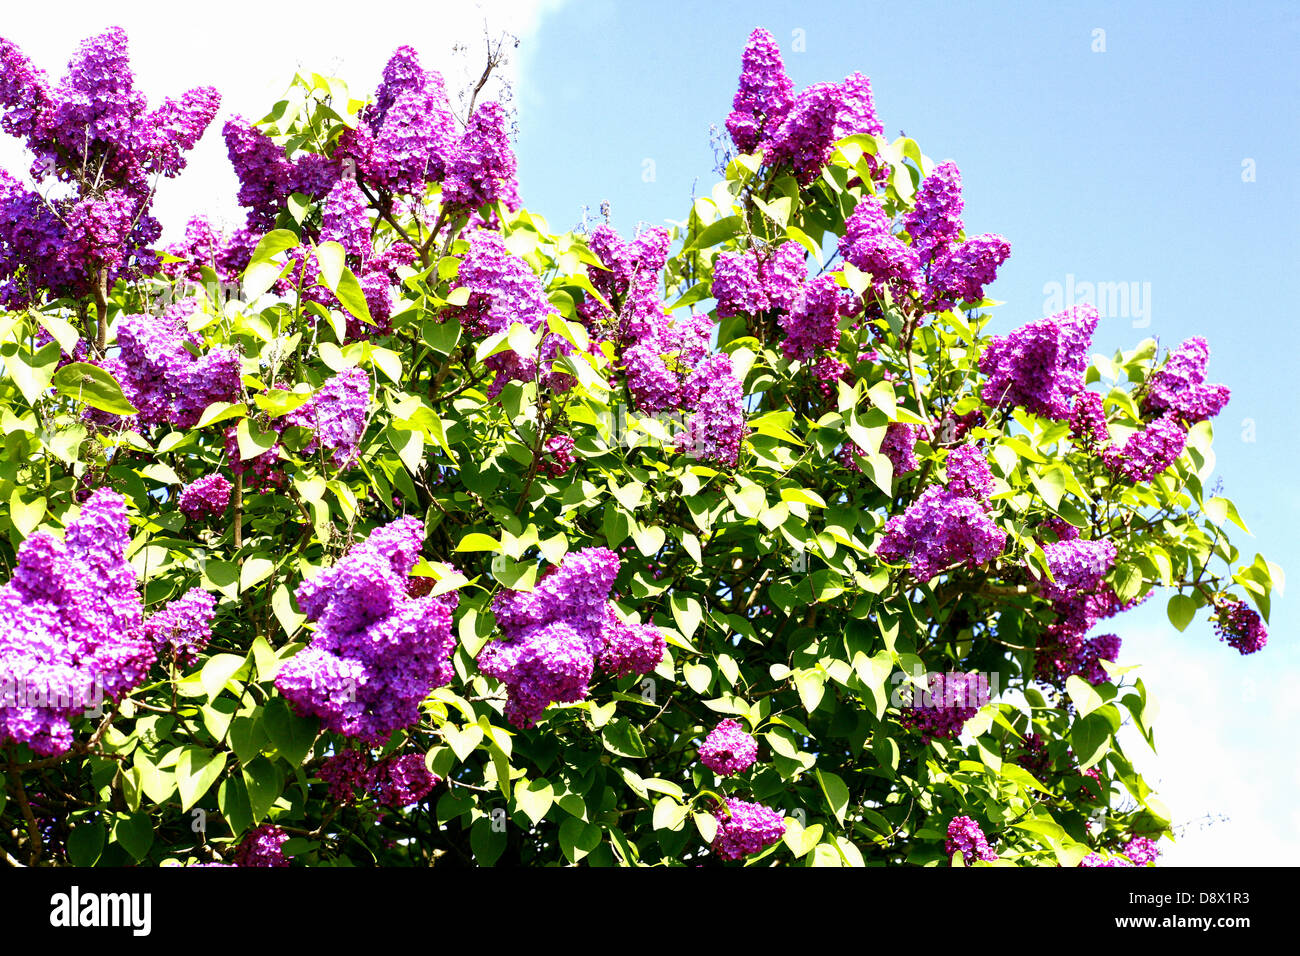 Part of a common Lilac tree against the sky. - Stock Image